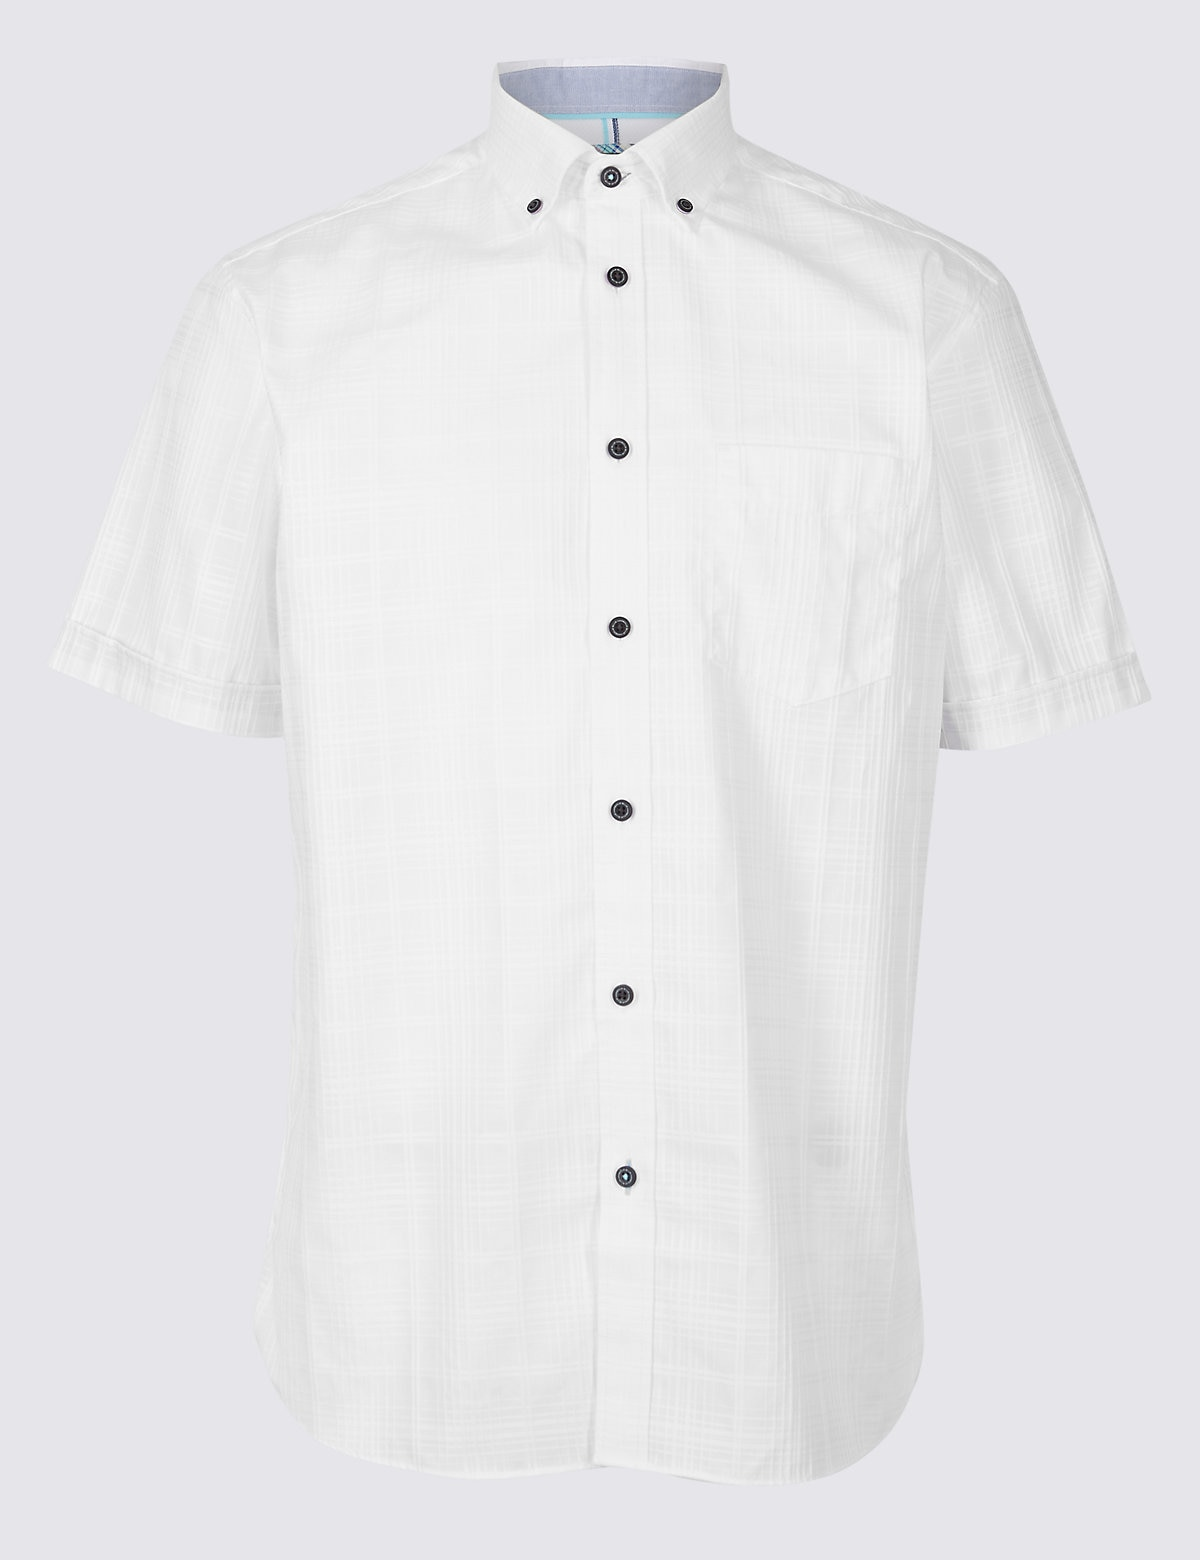 Marks & Spencer White Pure Cotton Textured Shirt with Pocket